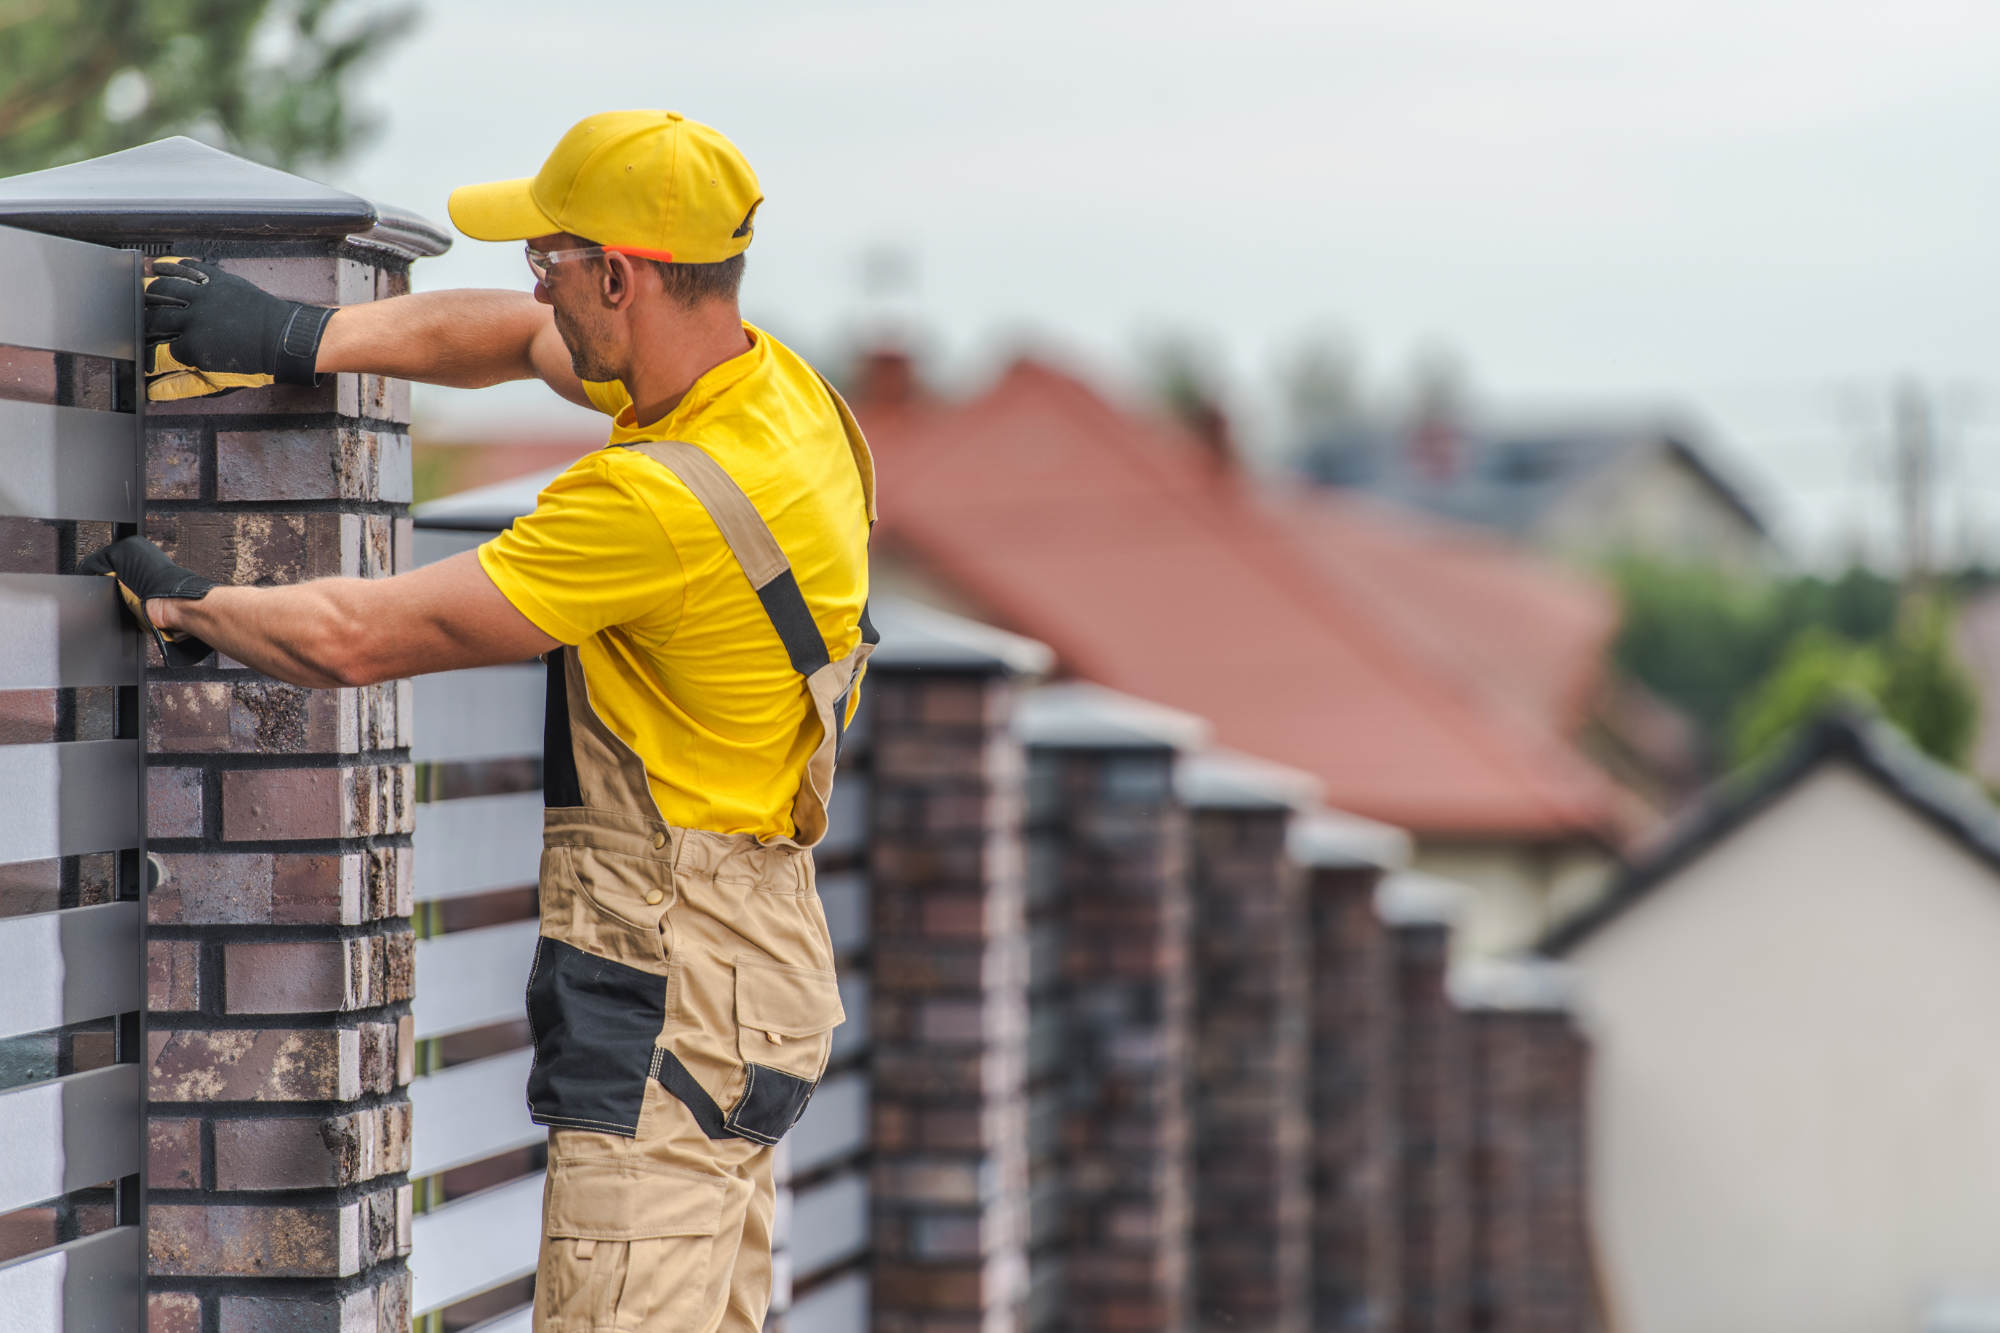 Brick and Wooden Panels Residential Home Fence Building by Professional Caucasian Construction Worker.